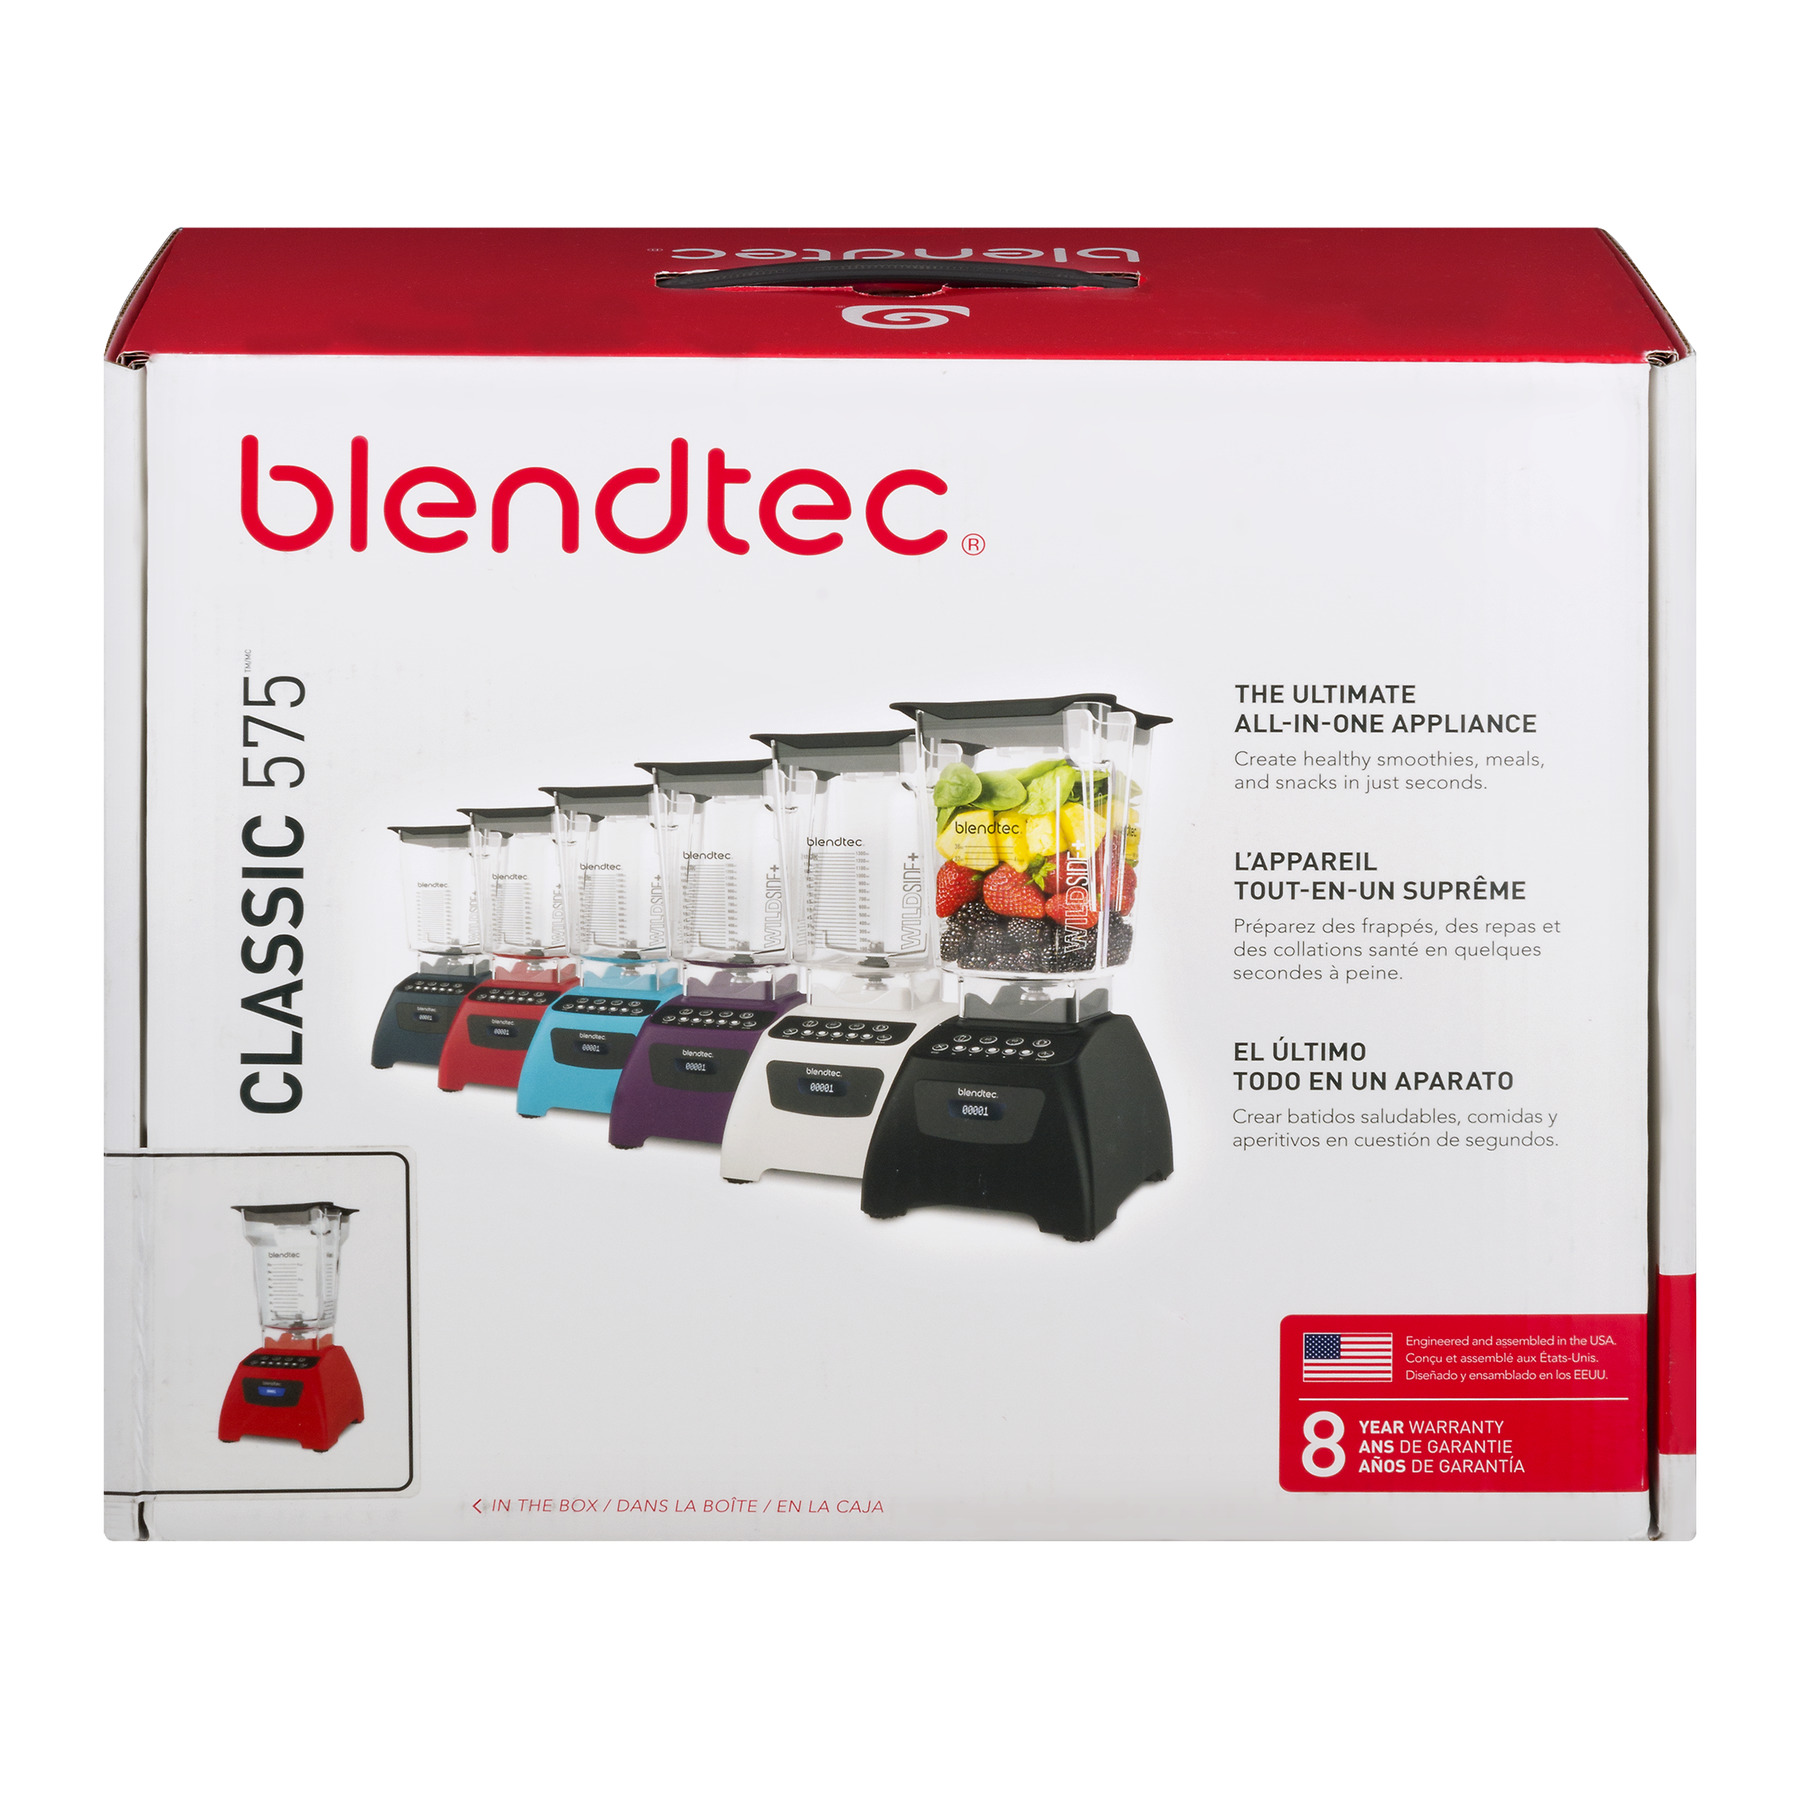 Blendtec The Ultimate All-In-One Appliance, 1.0 CT